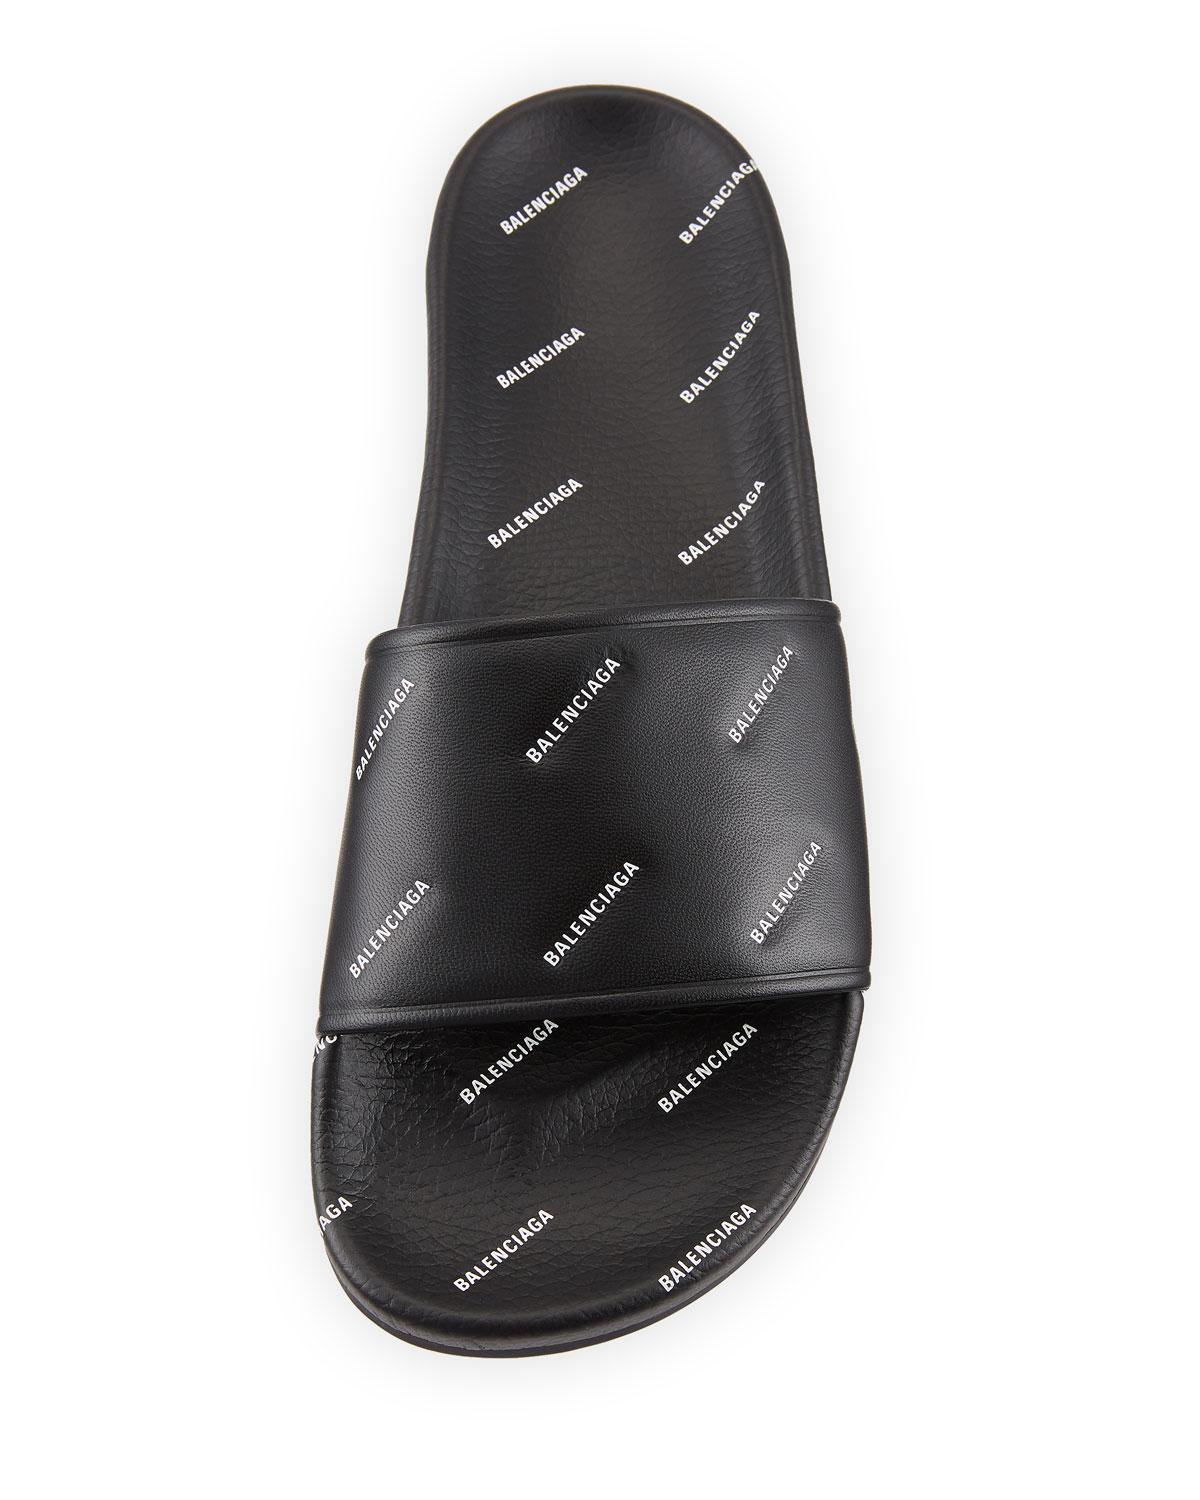 63c86fc5a02a Balenciaga - Black Men s Logo-print Pool Slide Sandals for Men - Lyst. View  fullscreen